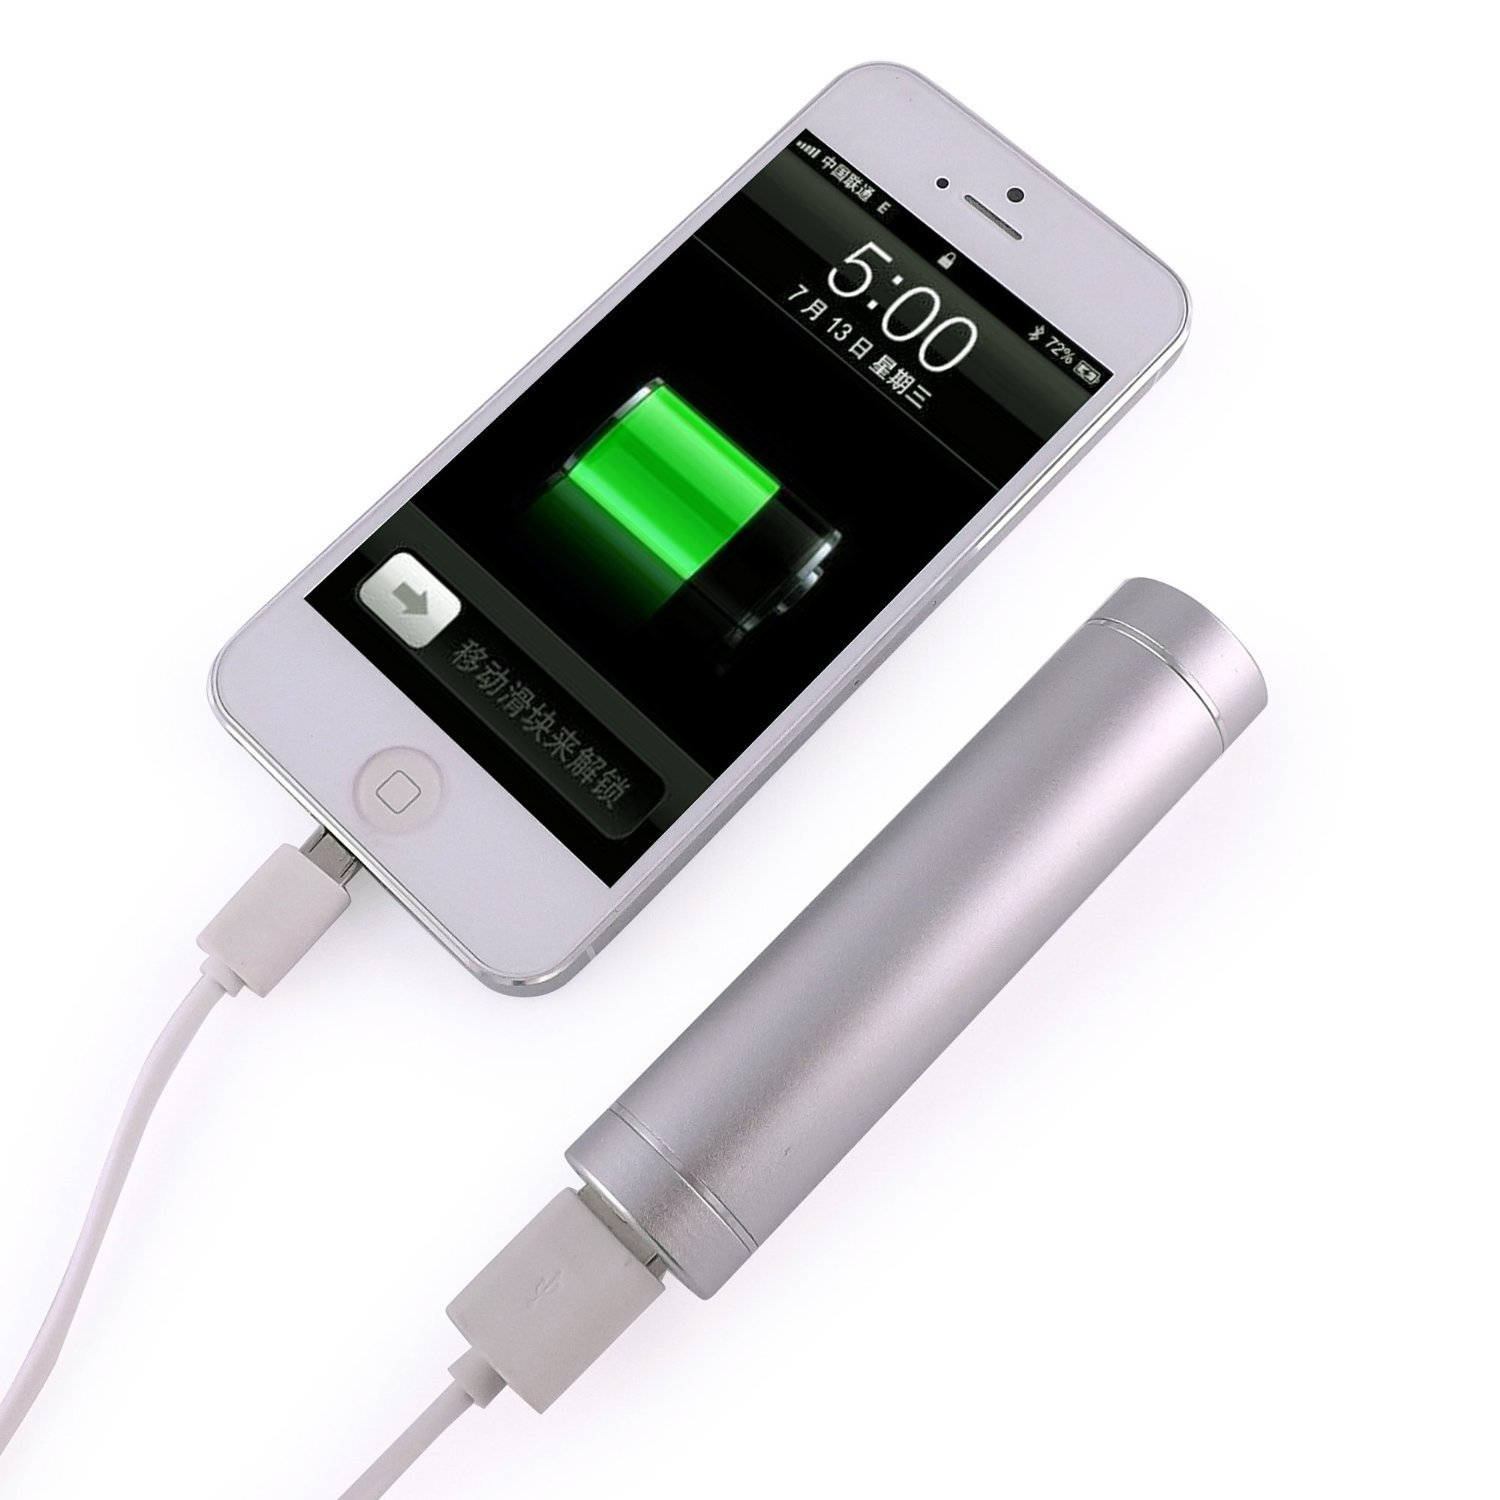 Mini 2600mAh Ultra-Compact Portable Lipstick-Sized External Battery Backup Charger Power Bank Charger for iPhone 5 (Apple adapters not included) 4S 4 3GS, iPod, Samsung Galaxy Note, Galexy S4, Galaxy S3, Galaxy S2, Galaxy Nexus, HTC One X, One S, Sensation G14, ThunderBolt, Nokia N9 Lumia 920 900,